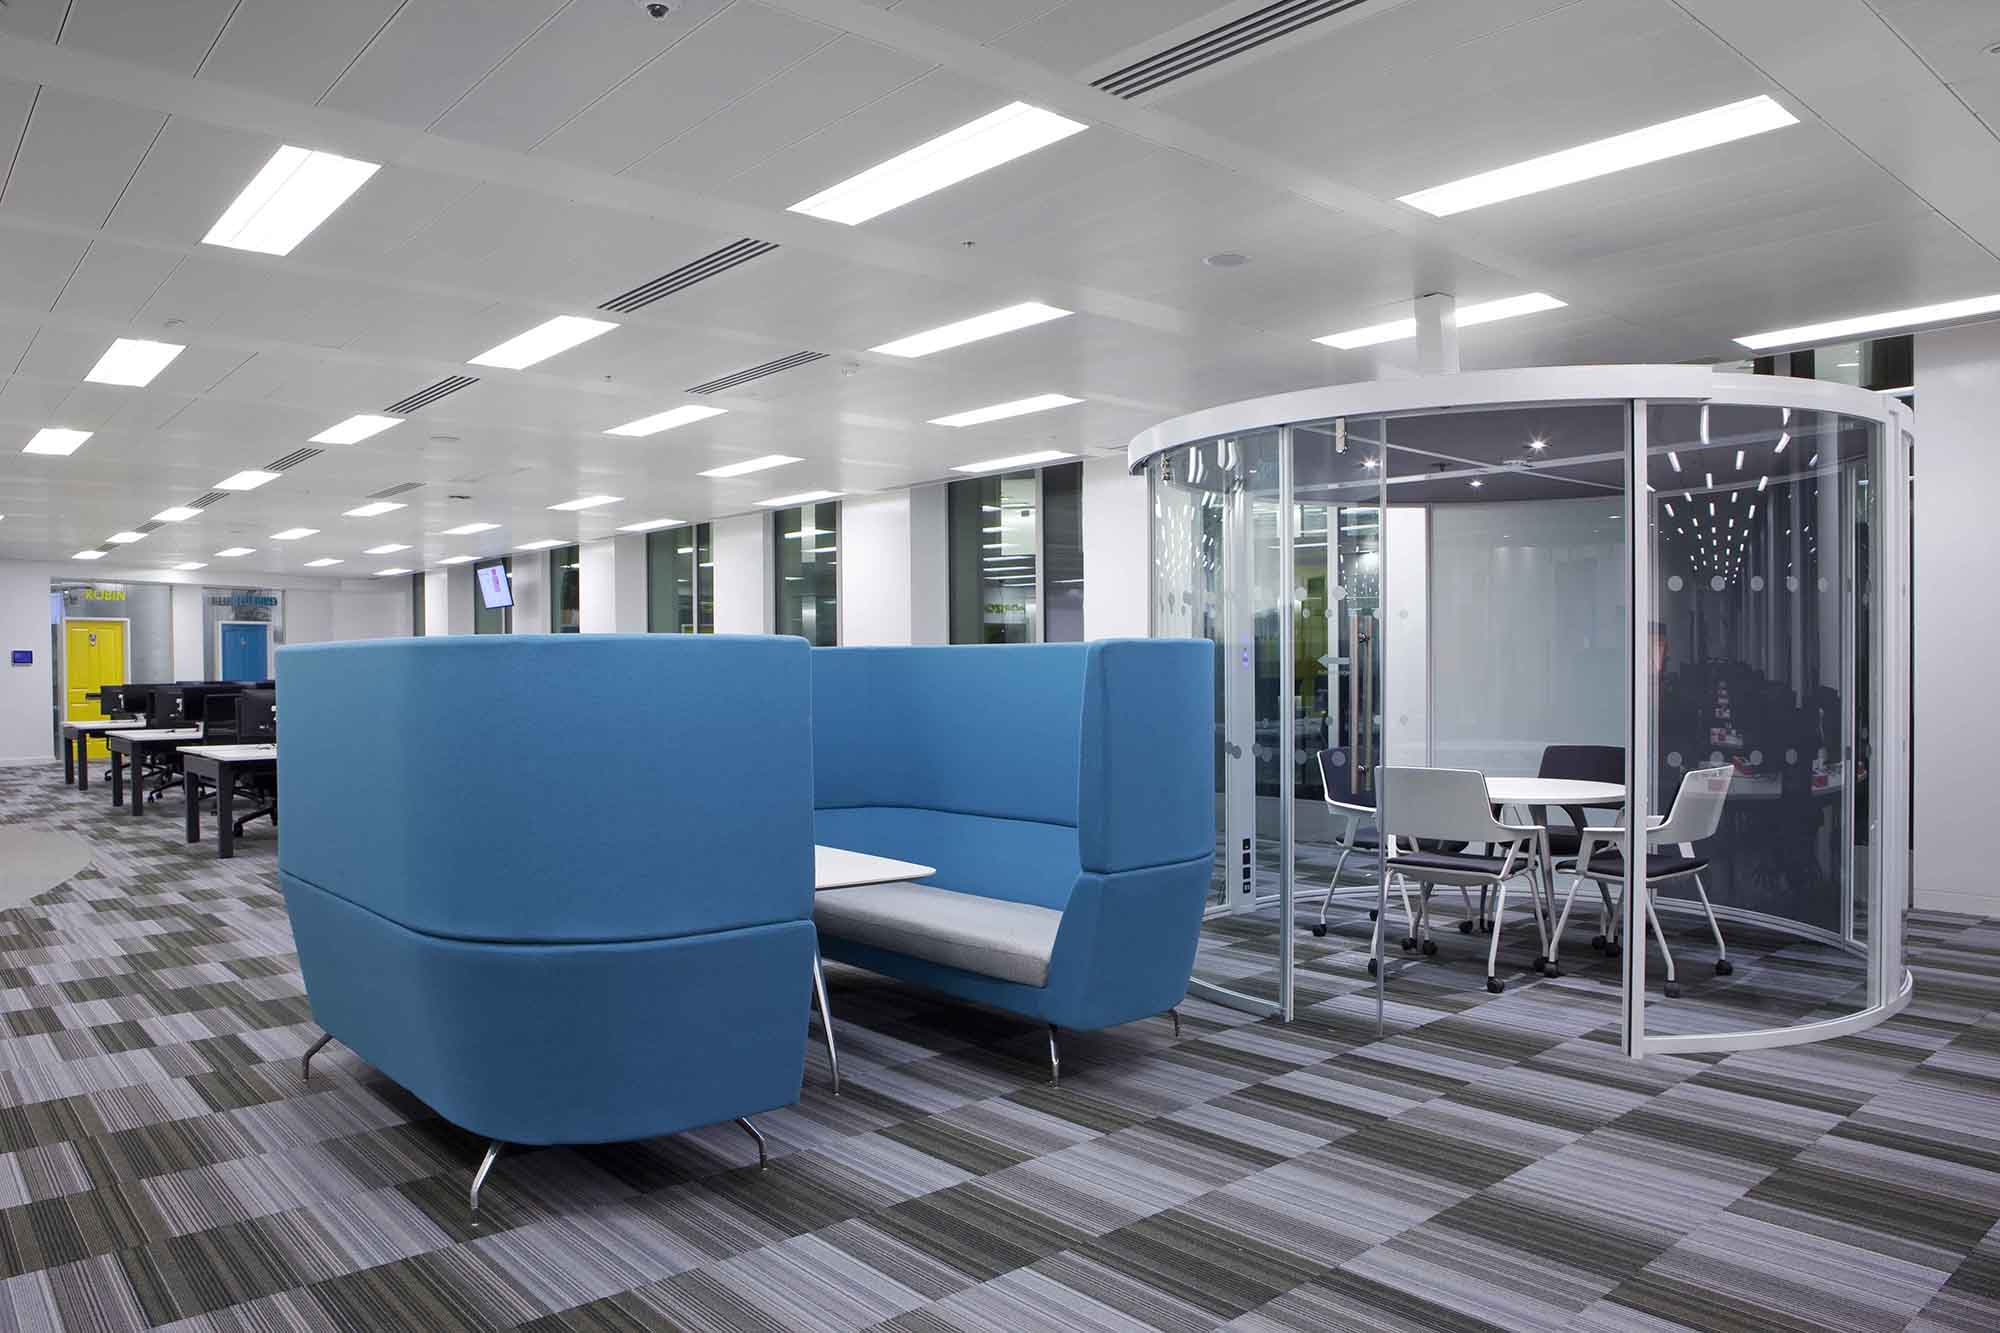 A Look Inside Autotrader\'s Cool London Office - Officelovin\'